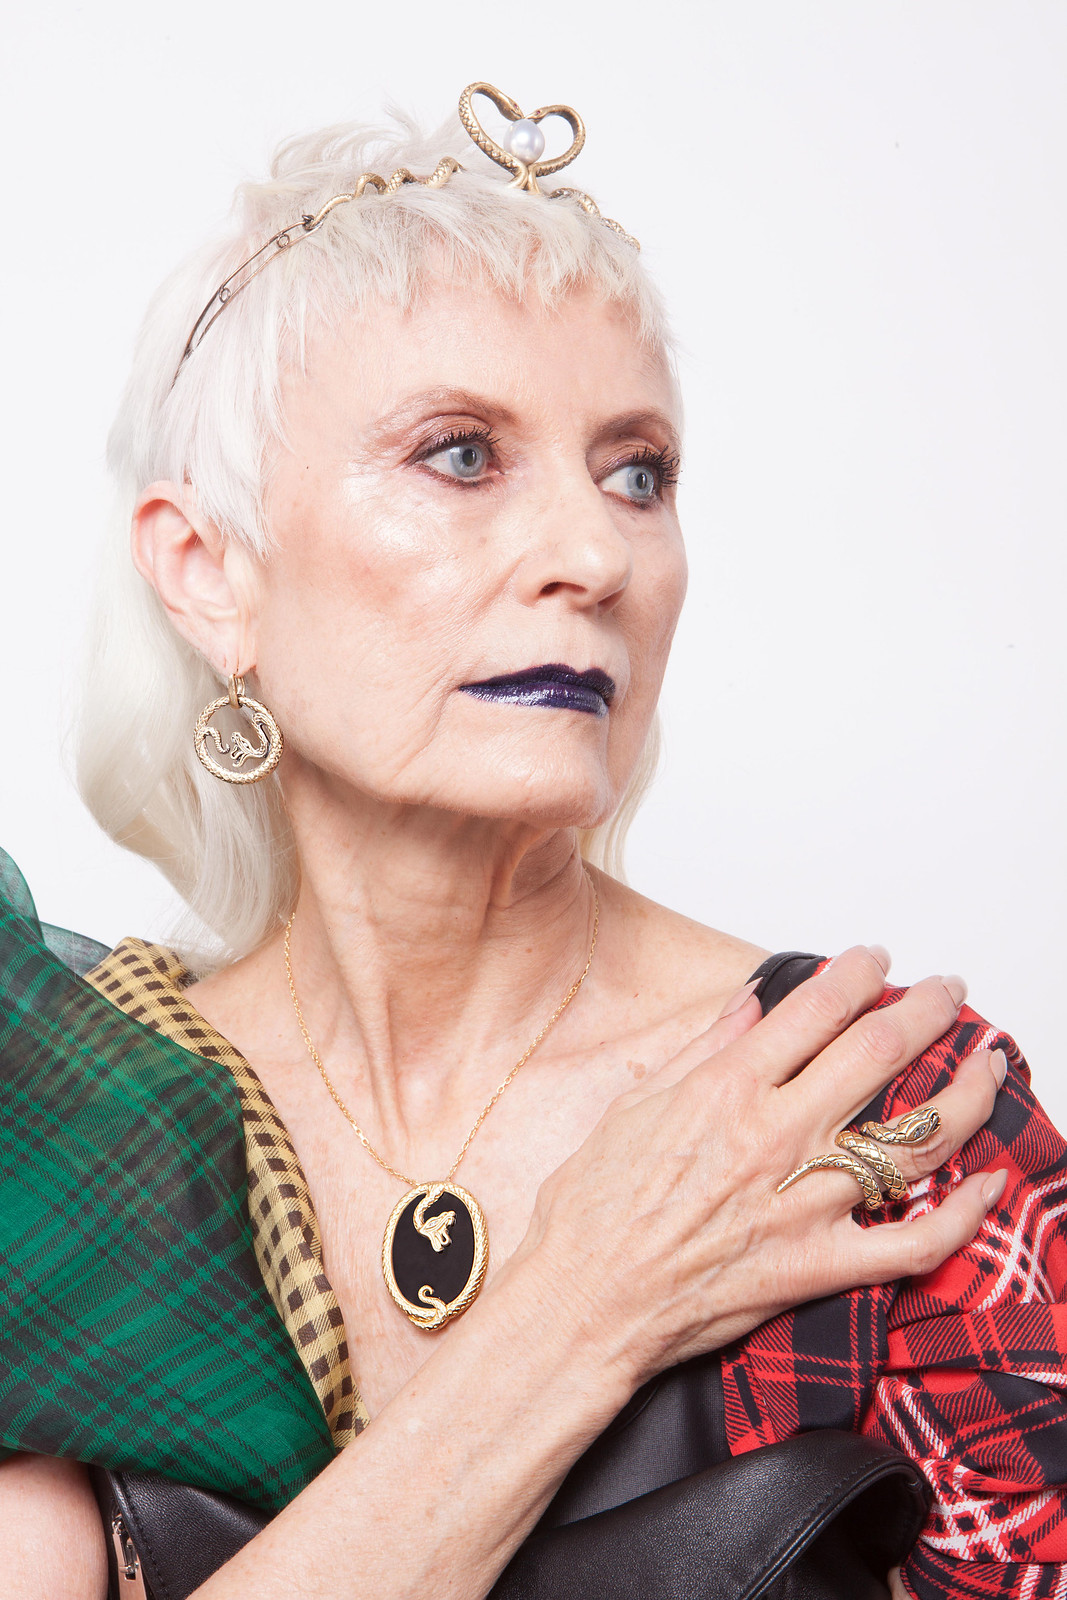 Over 40 Bloggers Who Have Modelled For Brands - Judith of Style Crone for Wendy Brandes Jewelry